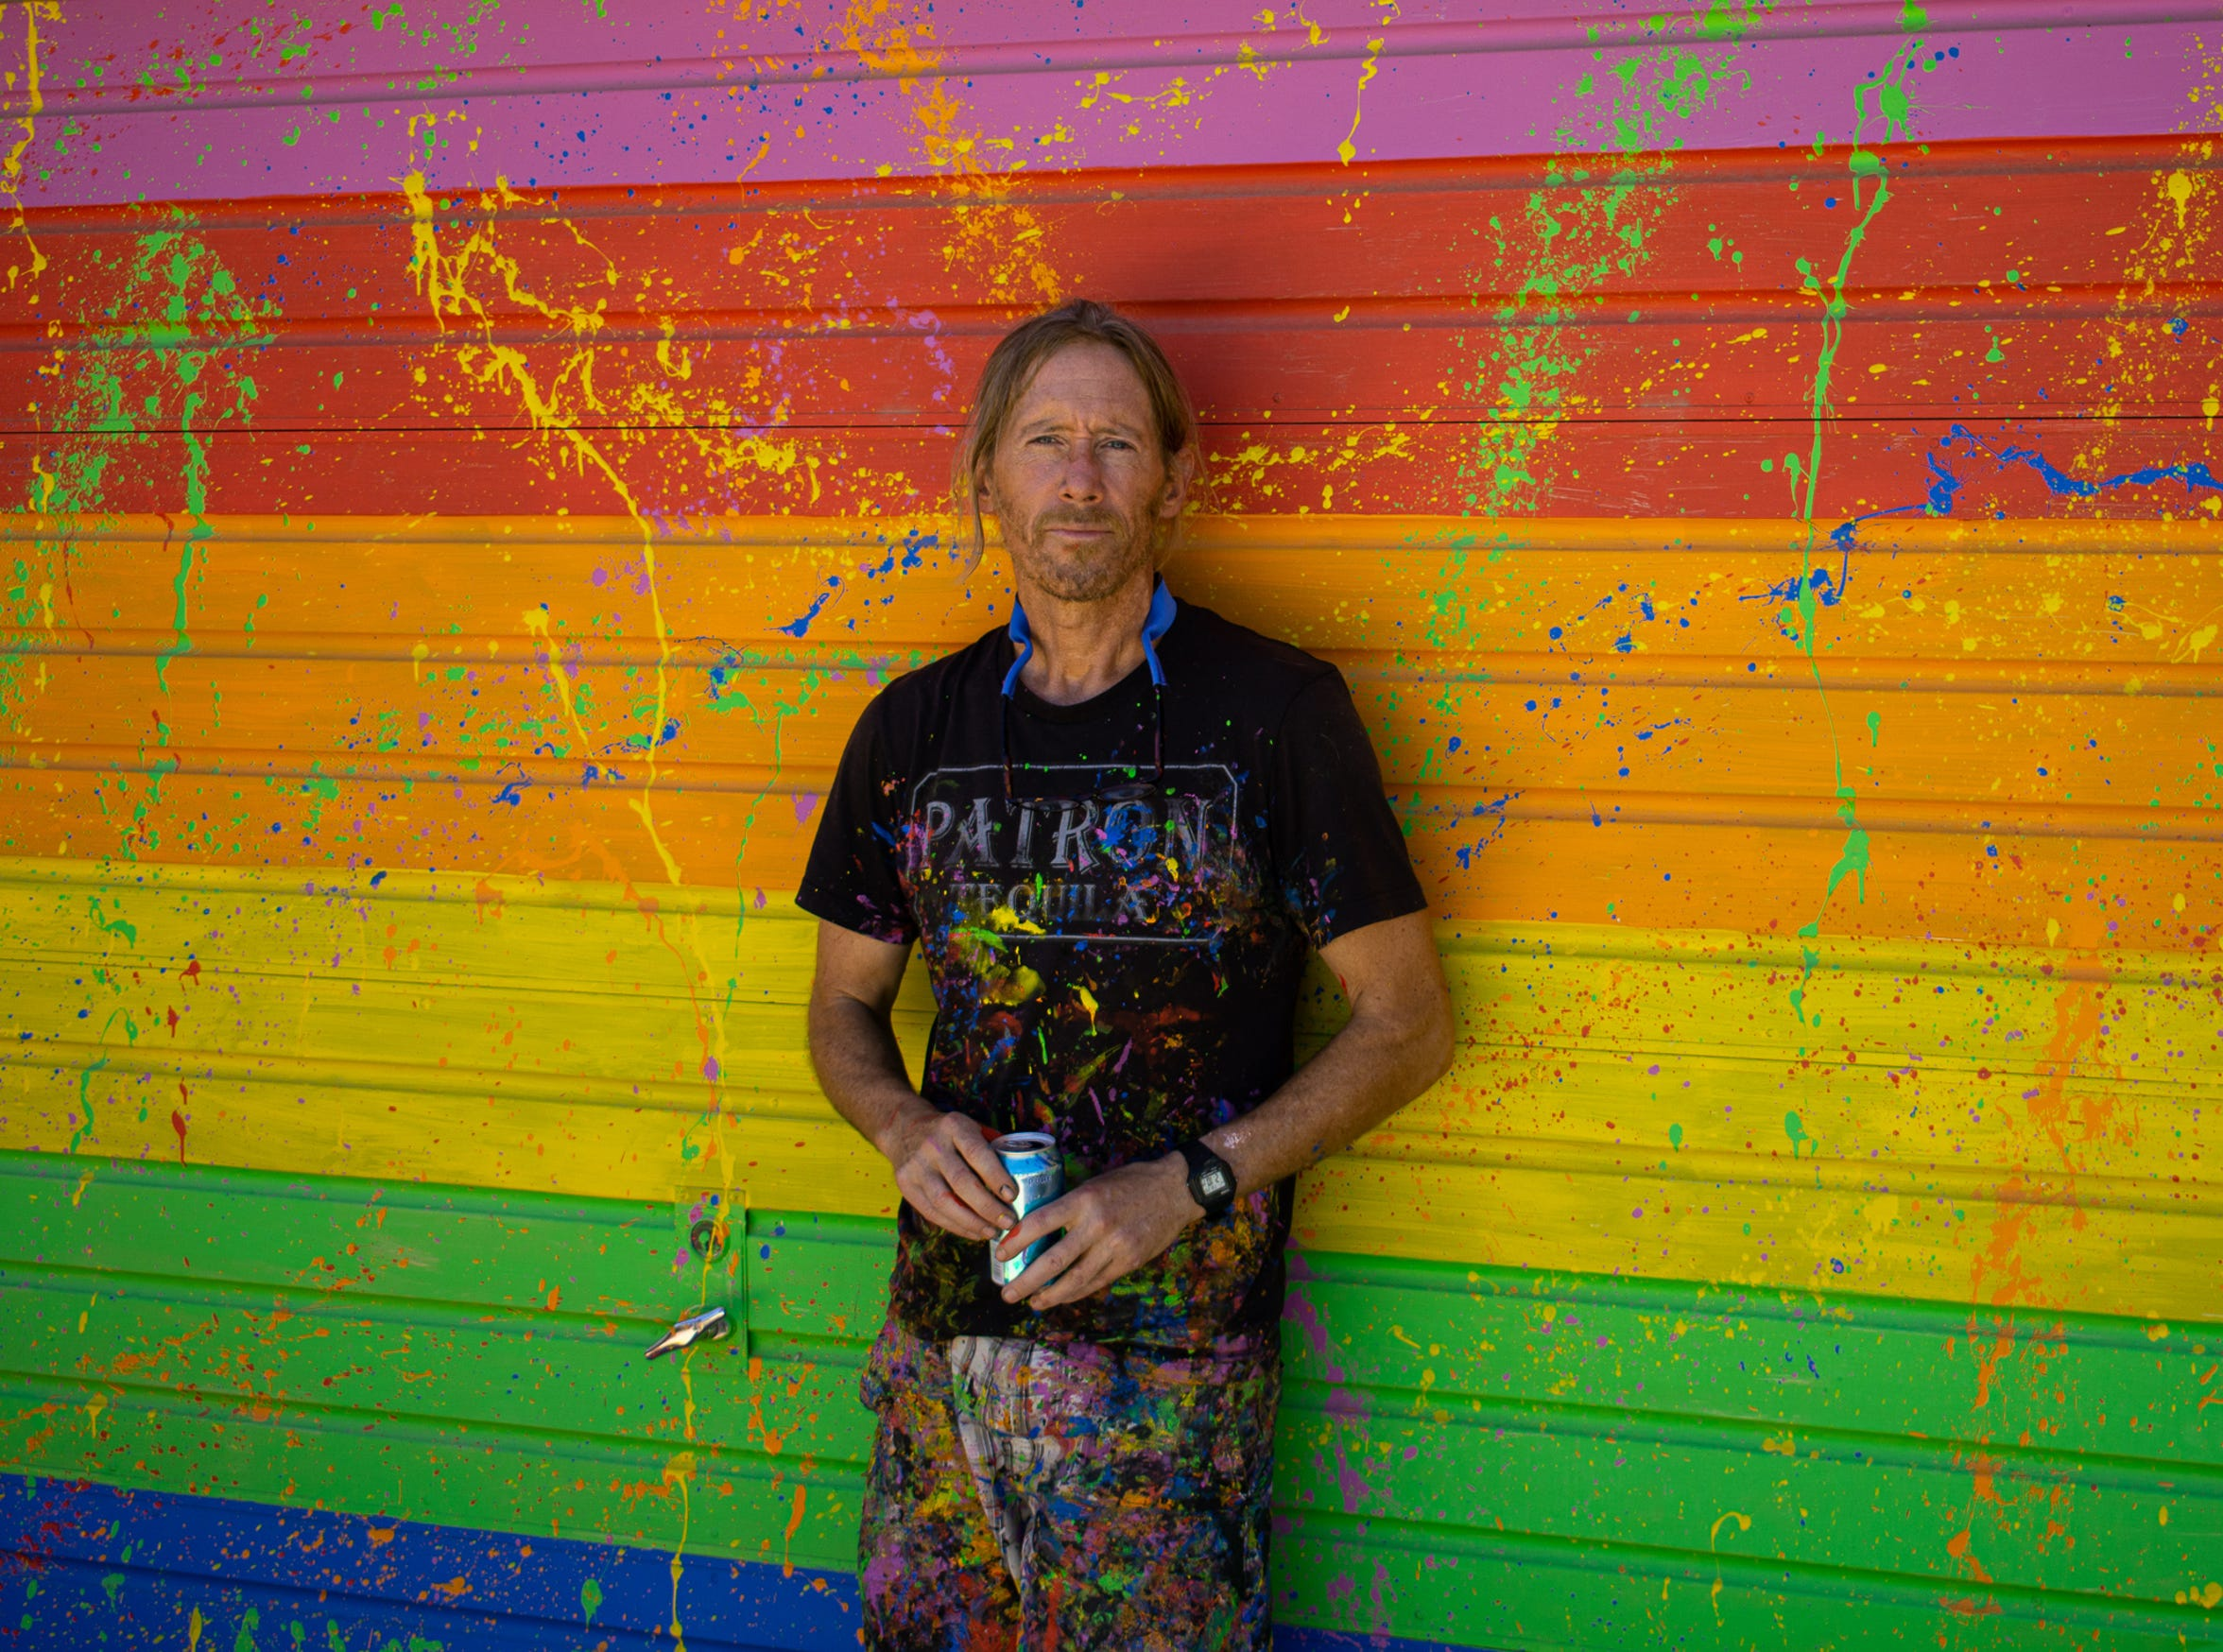 Artist Patrick Hasson poses in front of his studio at Rancho El Reposo in Joshua Tree, Calif. on Aug. 19, 2019.